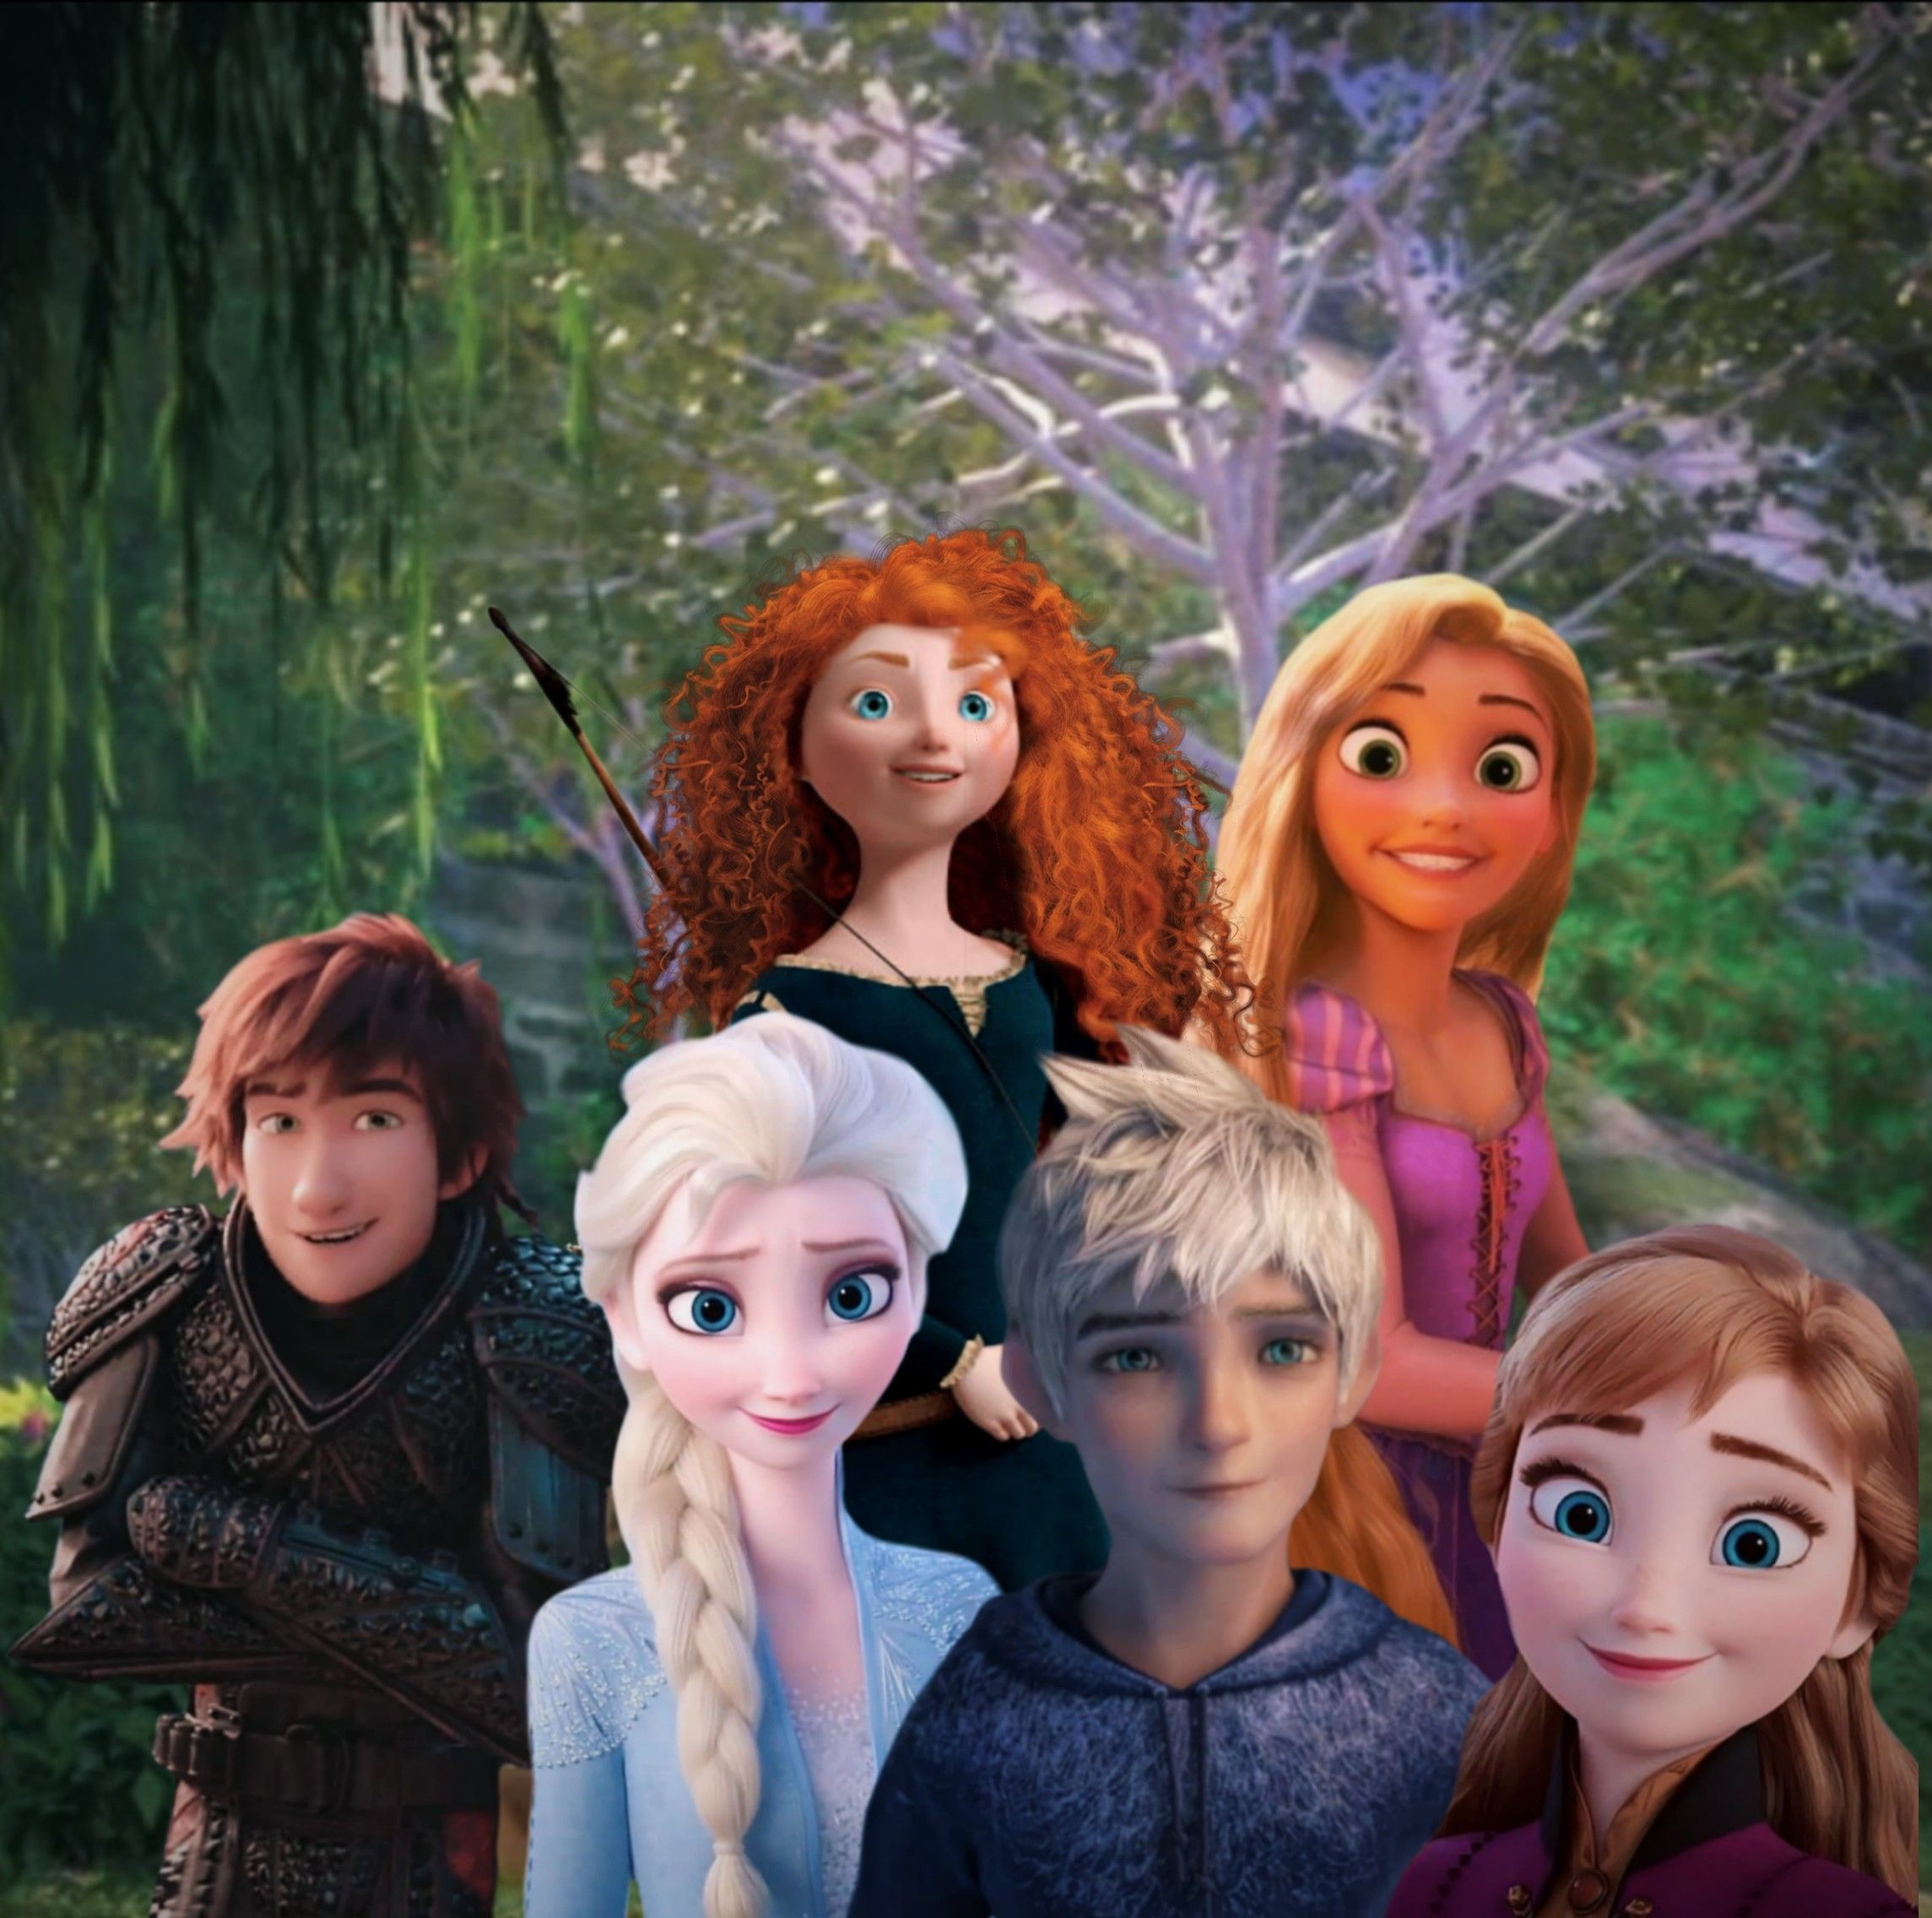 Rise Of The Brave Tangled Frozen Dragons Jack Frost Merida Rapunzel Elsa Anna Hiccup In 2020 Disney Jack Frost Disney Princess Wallpaper